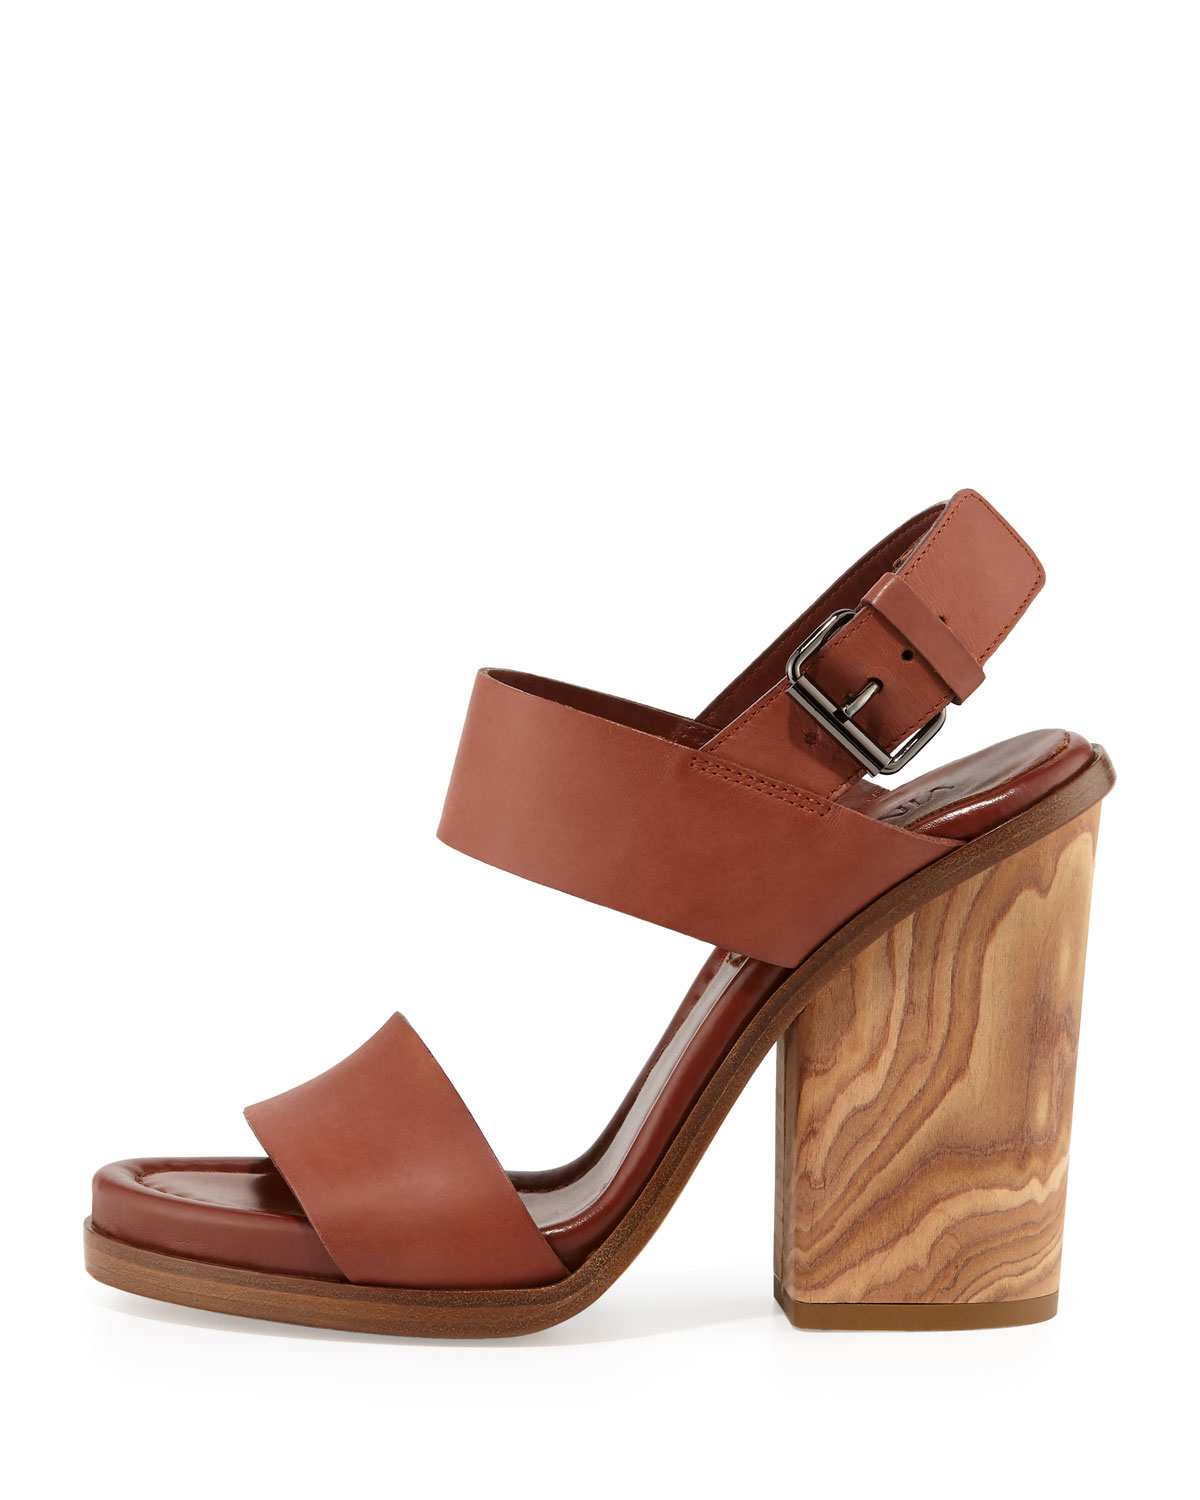 9f028f2128c39 Vince Brown Haley Leather and Wood Sandals